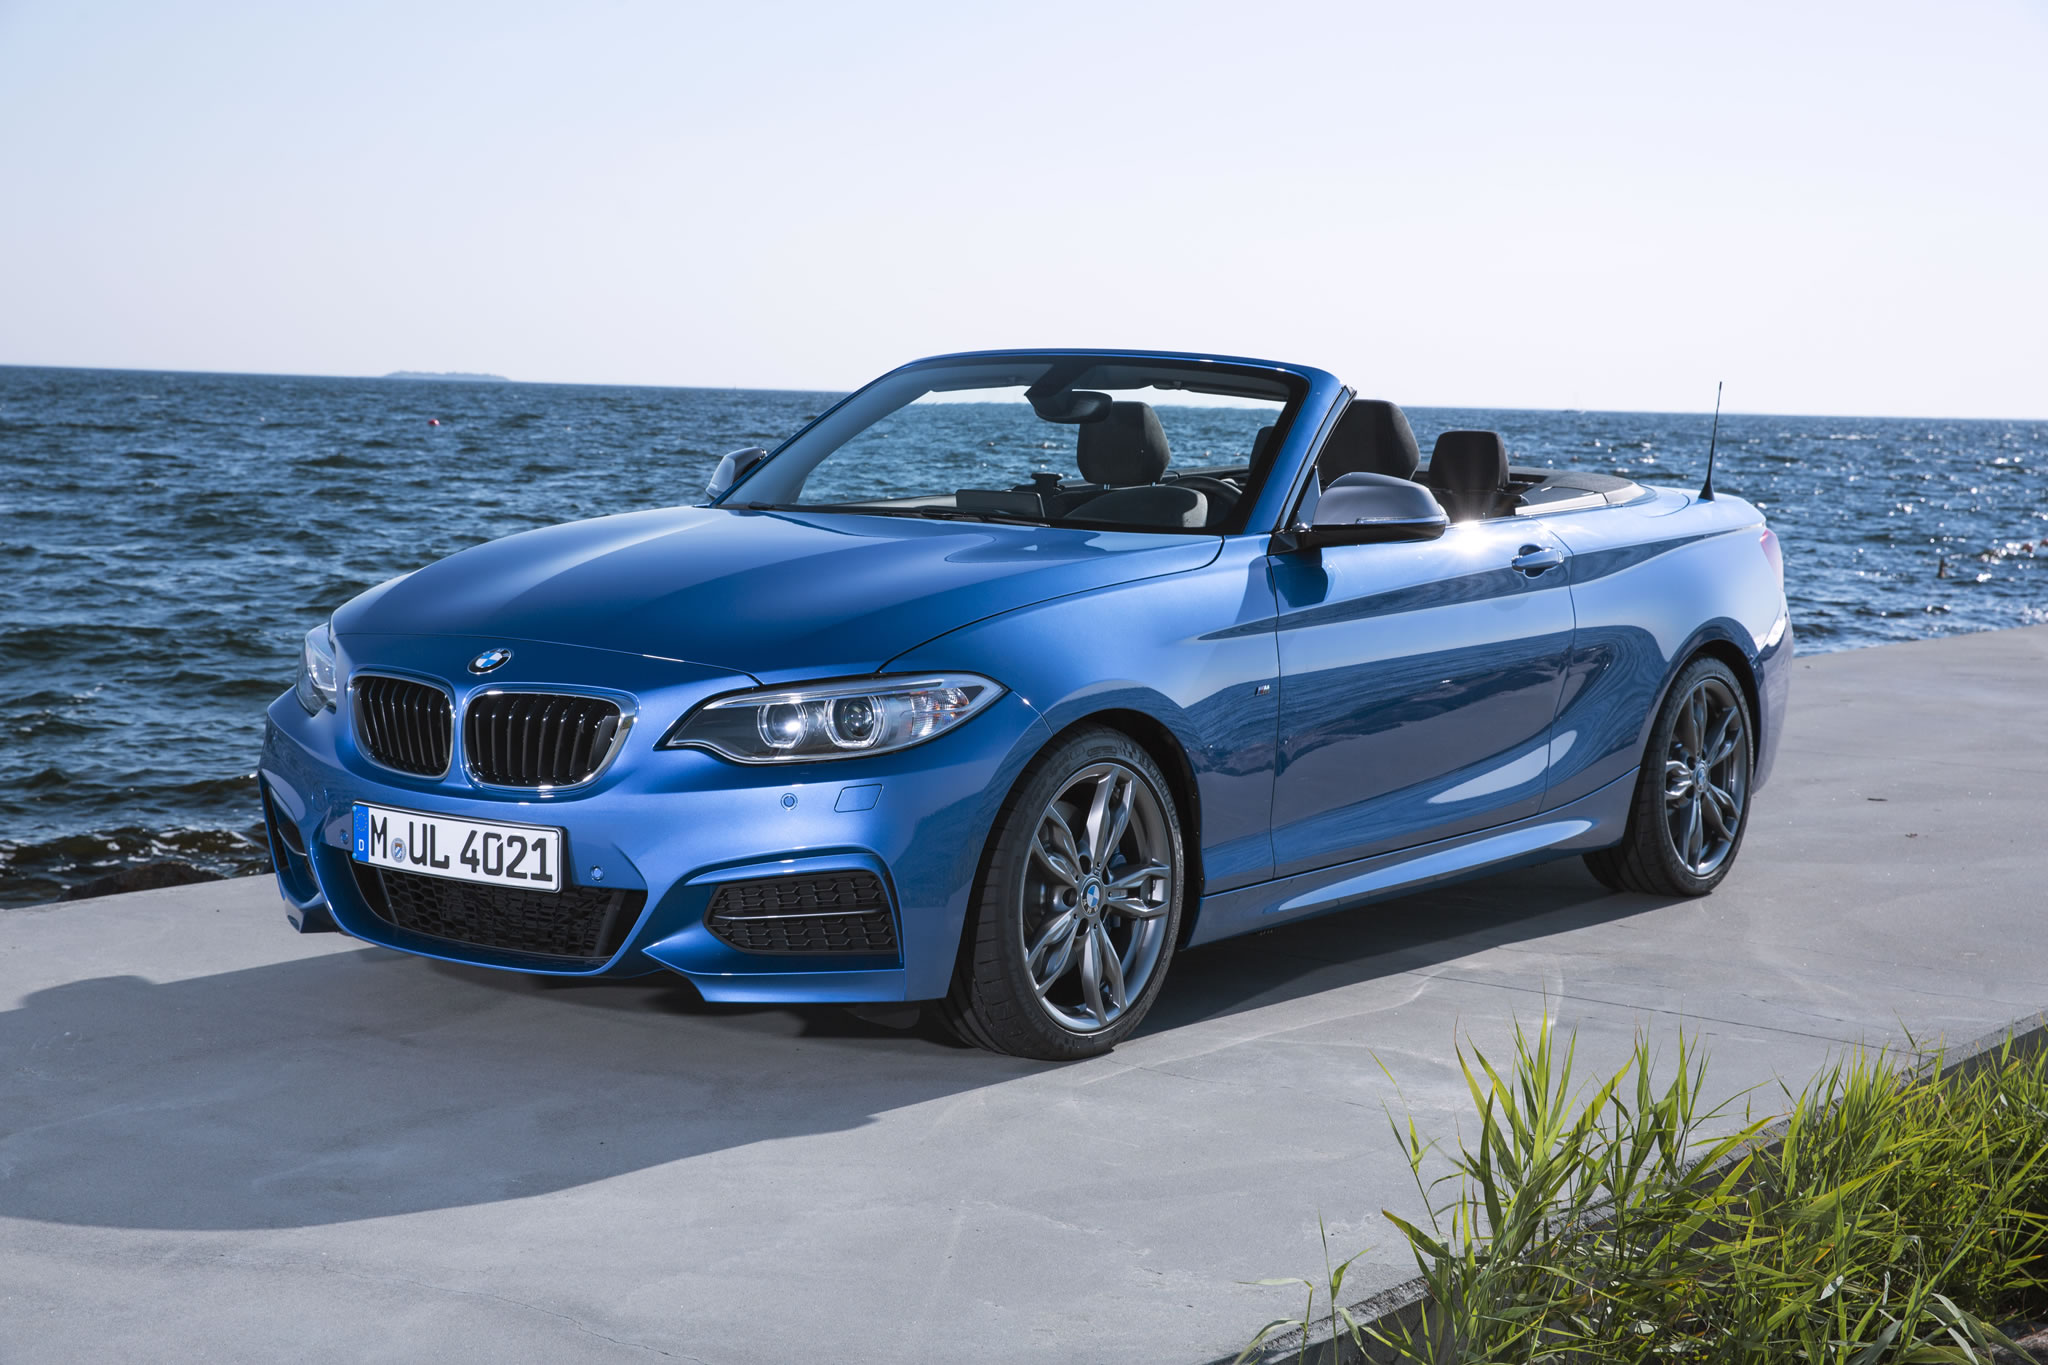 2015 BMW M235i Convertible s Specs and Review RS